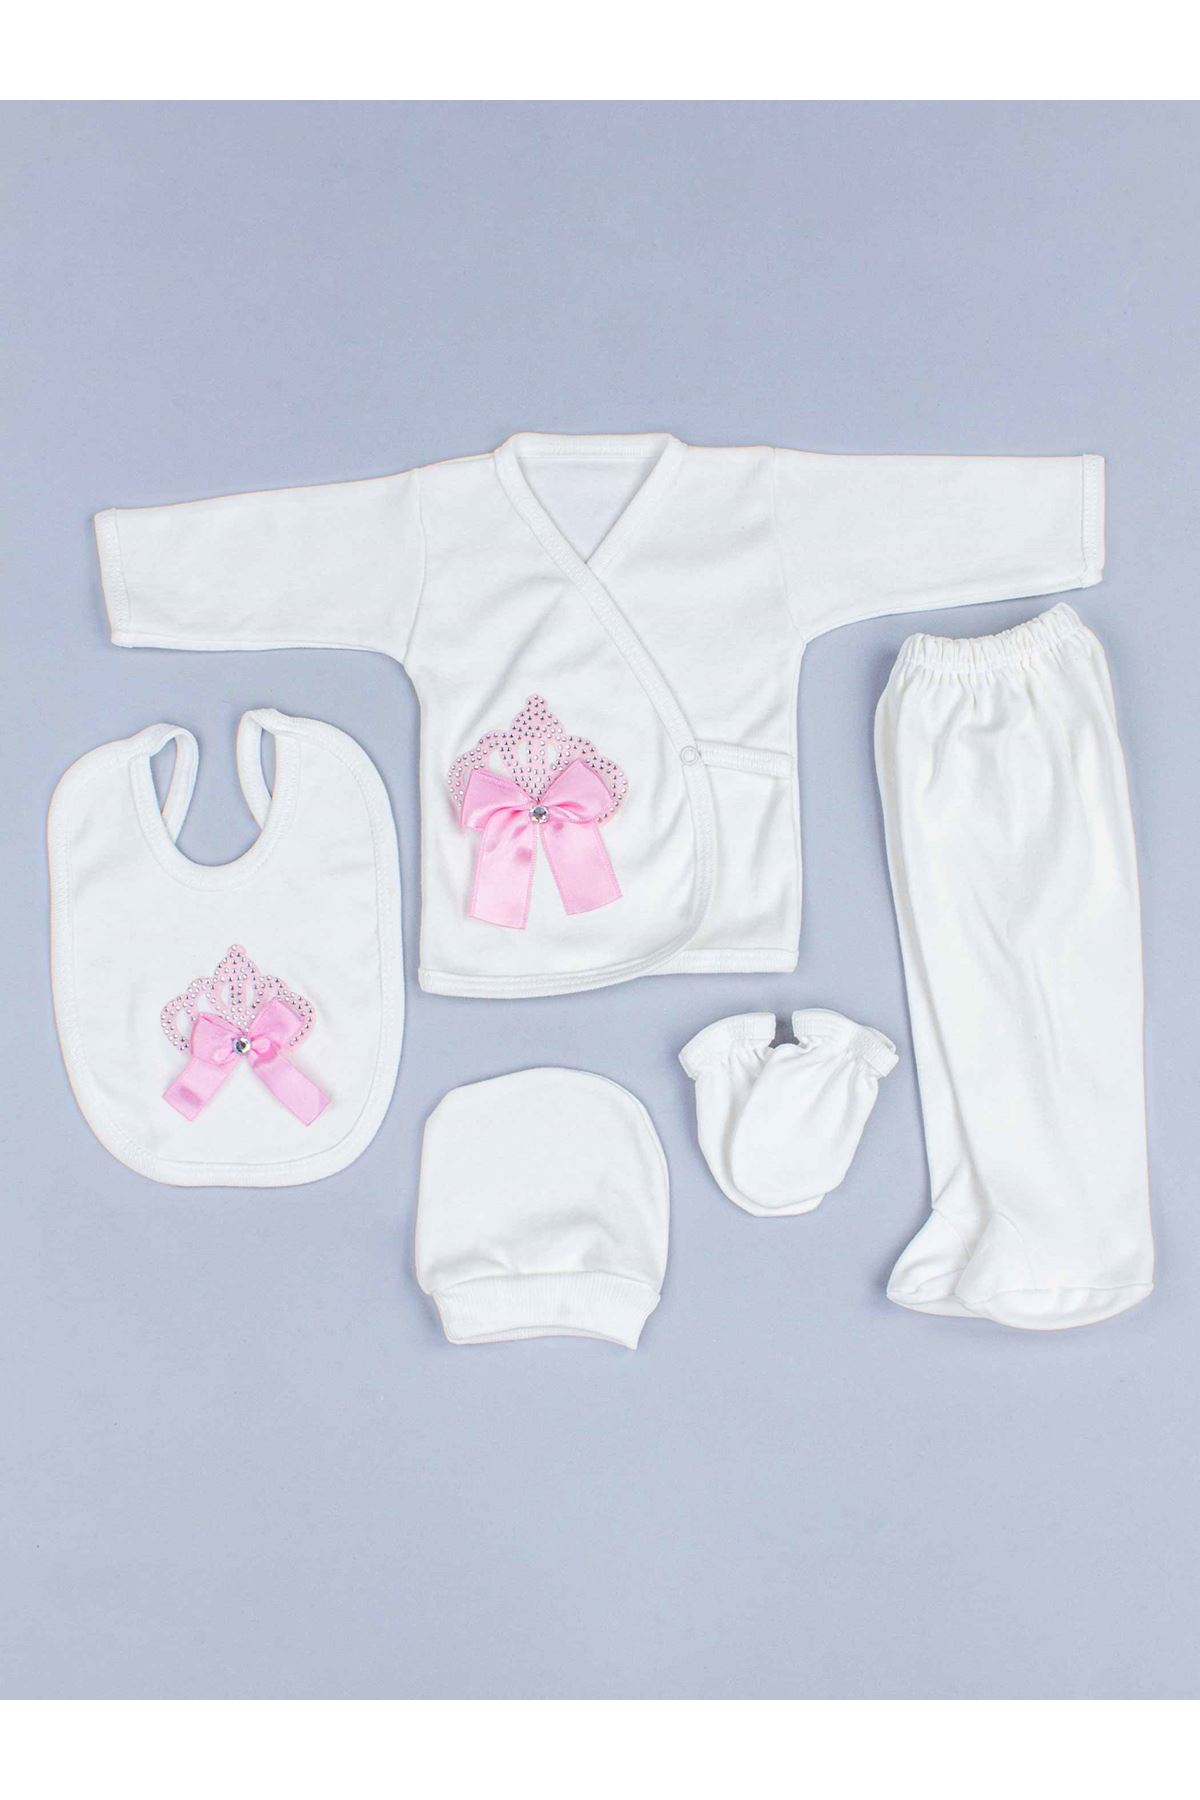 Pink Baby Rompers Girl Boy Newborn Clothes 5pcs Set King Queen Clothing Antiallergic Cotton Babies Types Hospital Outlet Types